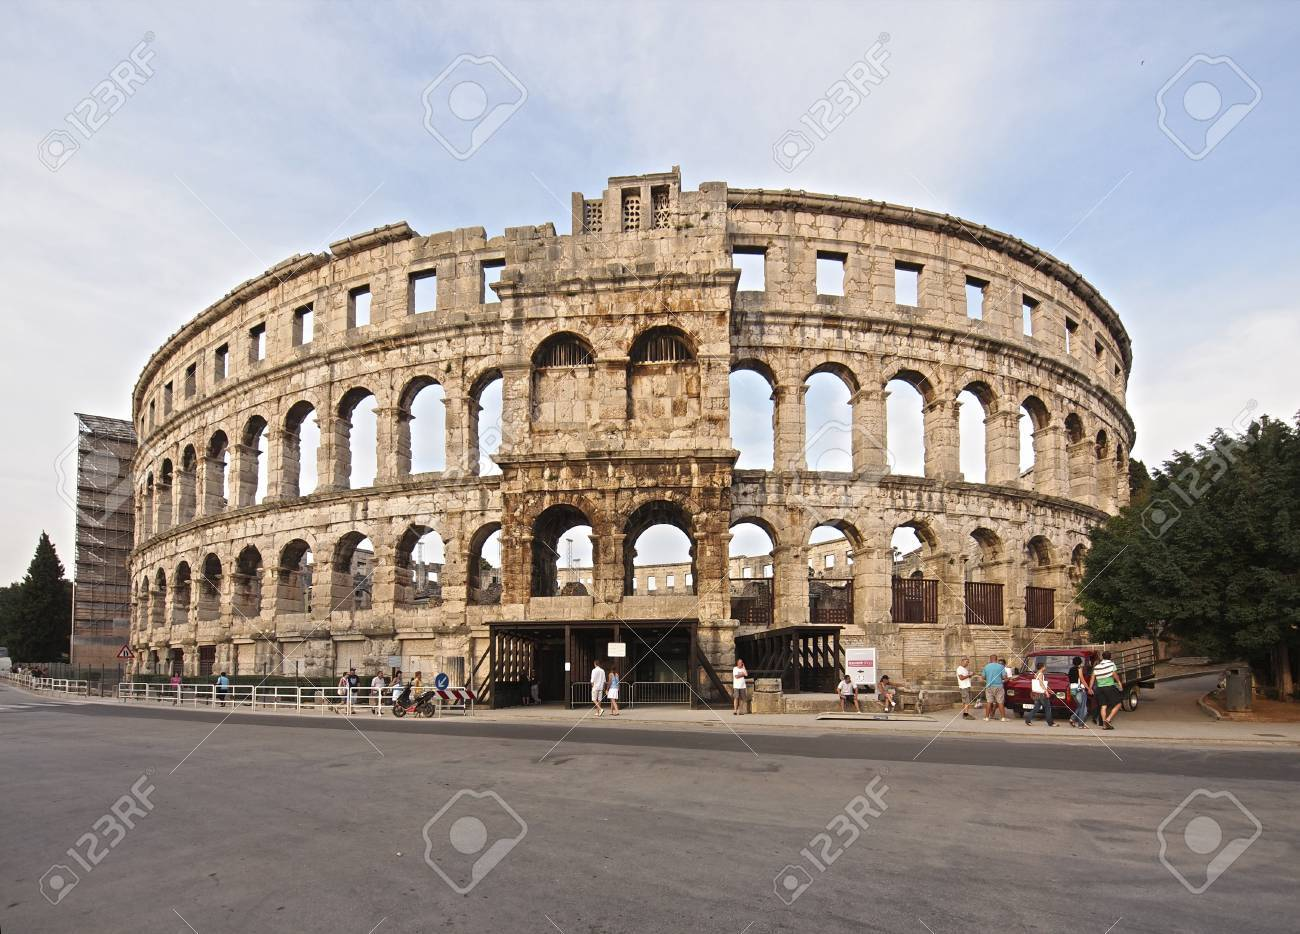 Pula Croatia Photos Stock Photo Pula Croatia